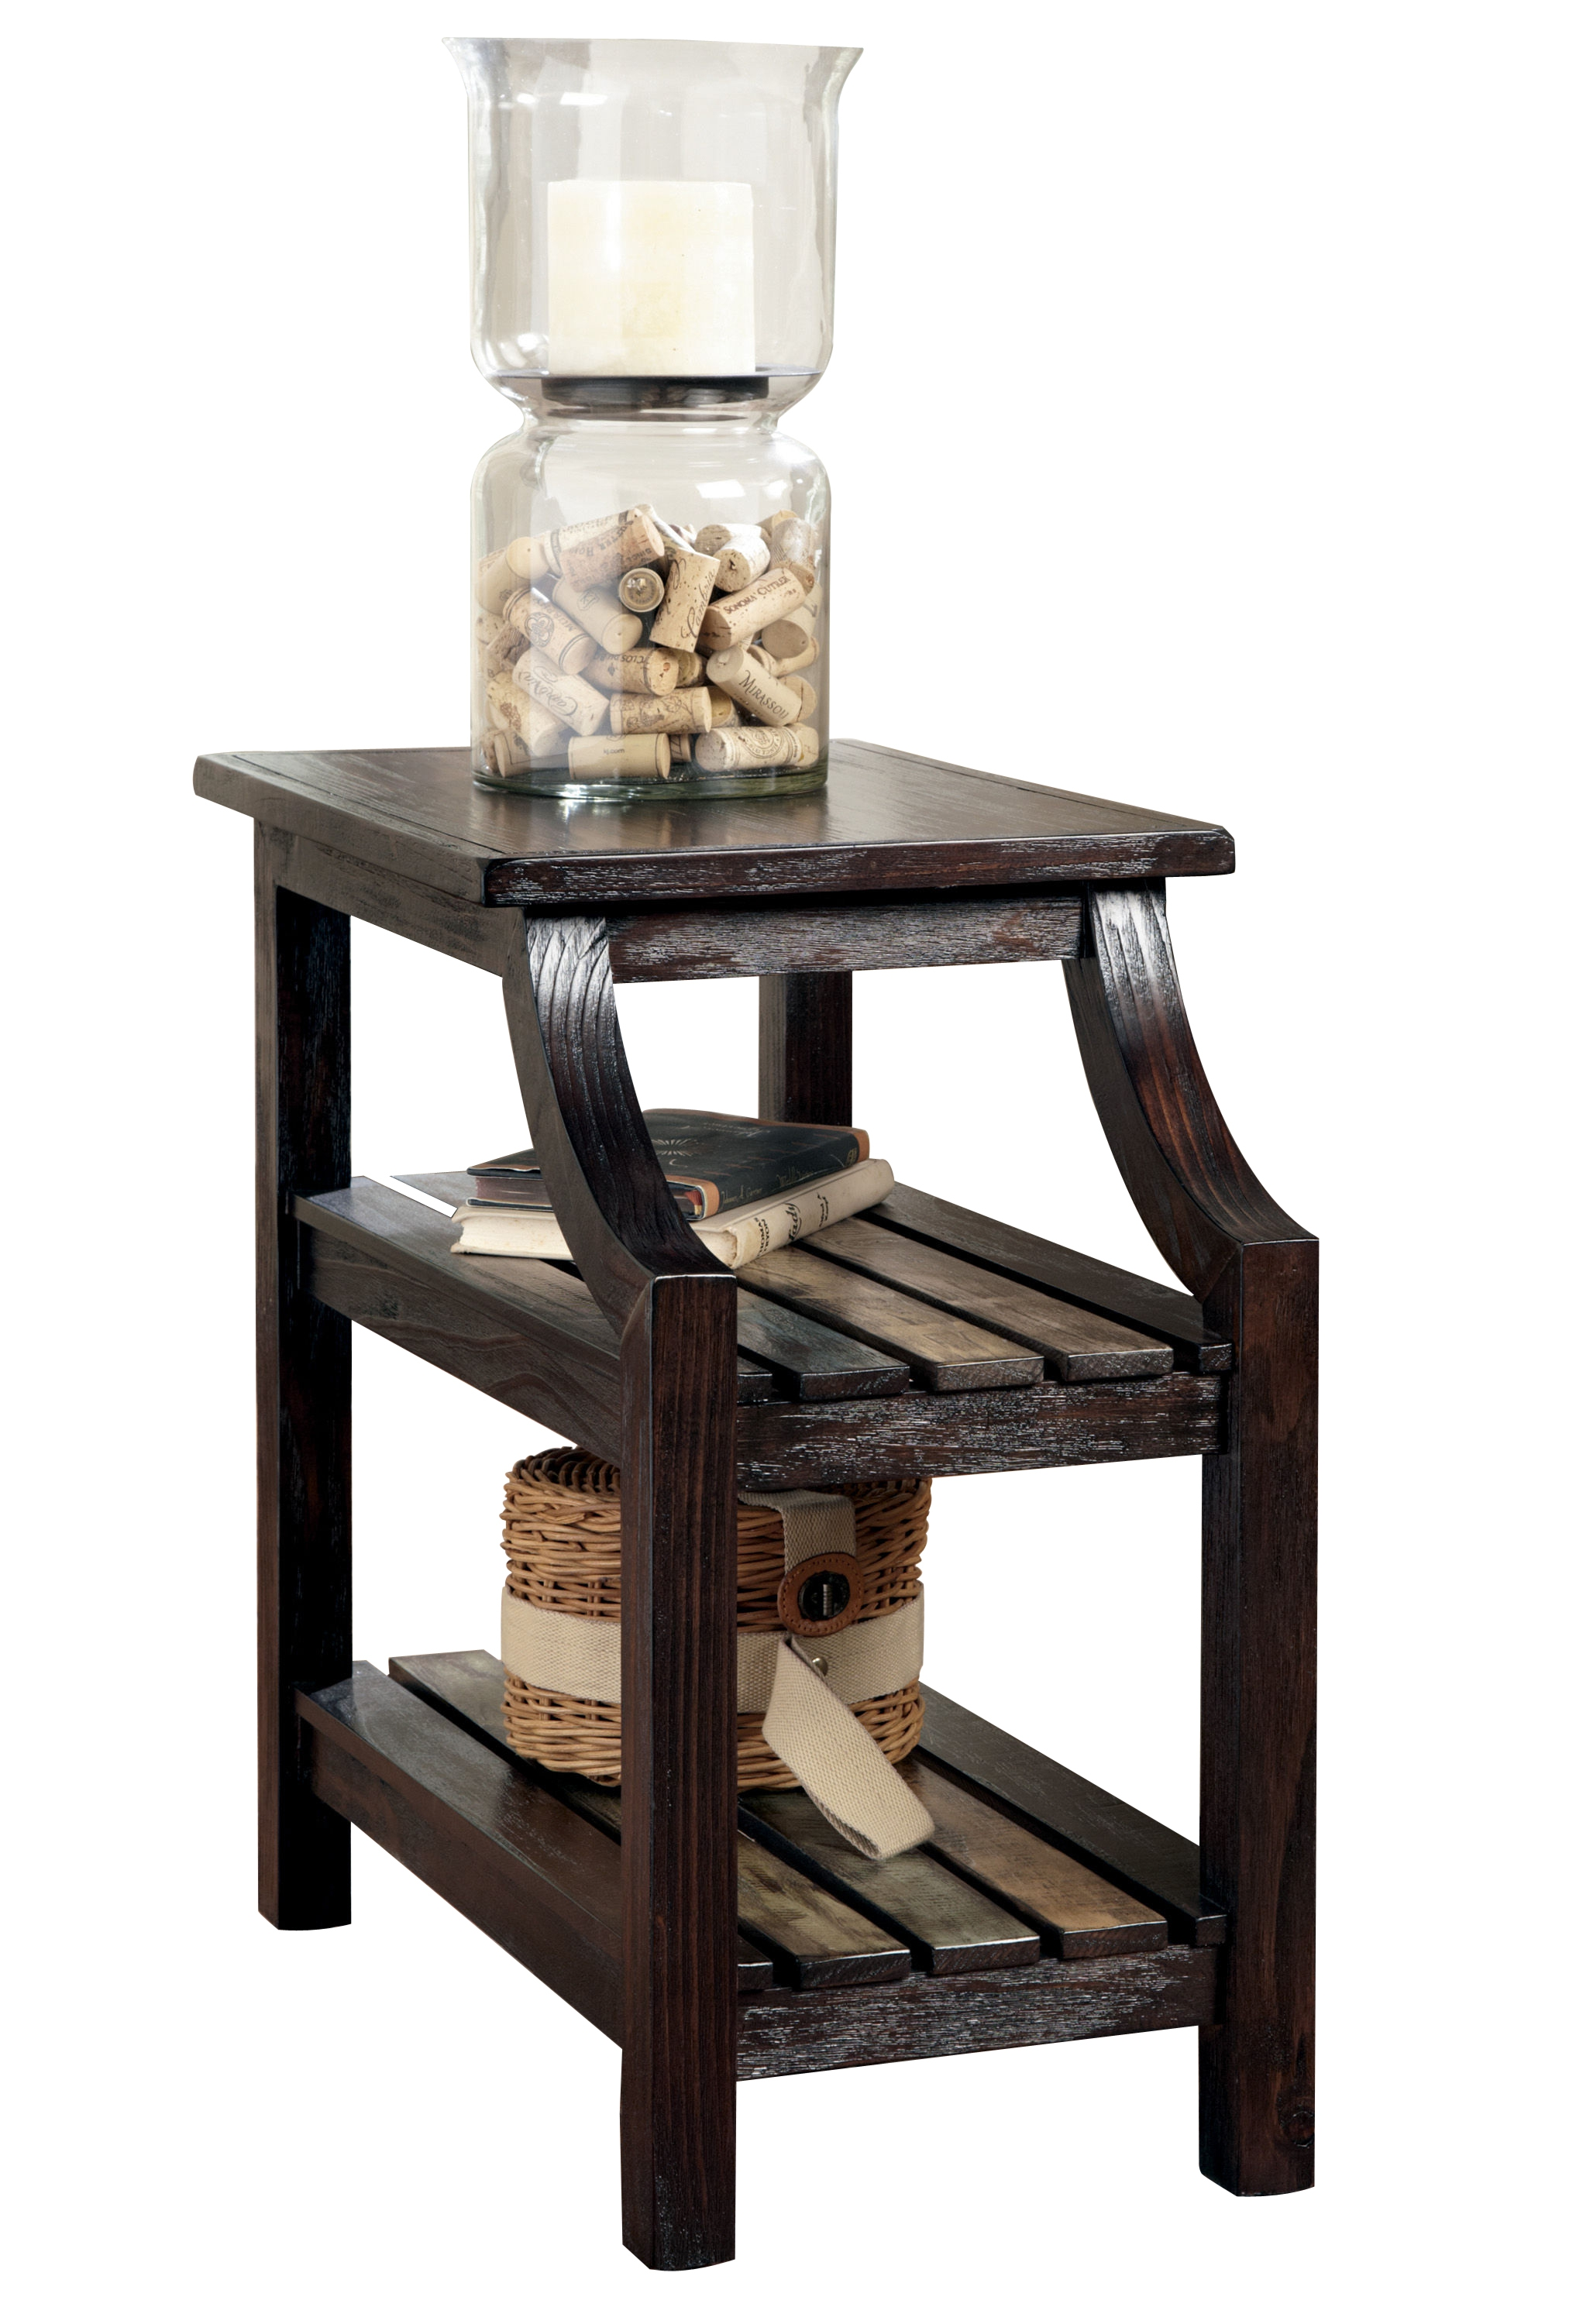 Ashley Furniture Mestler Brown Chairside Table The